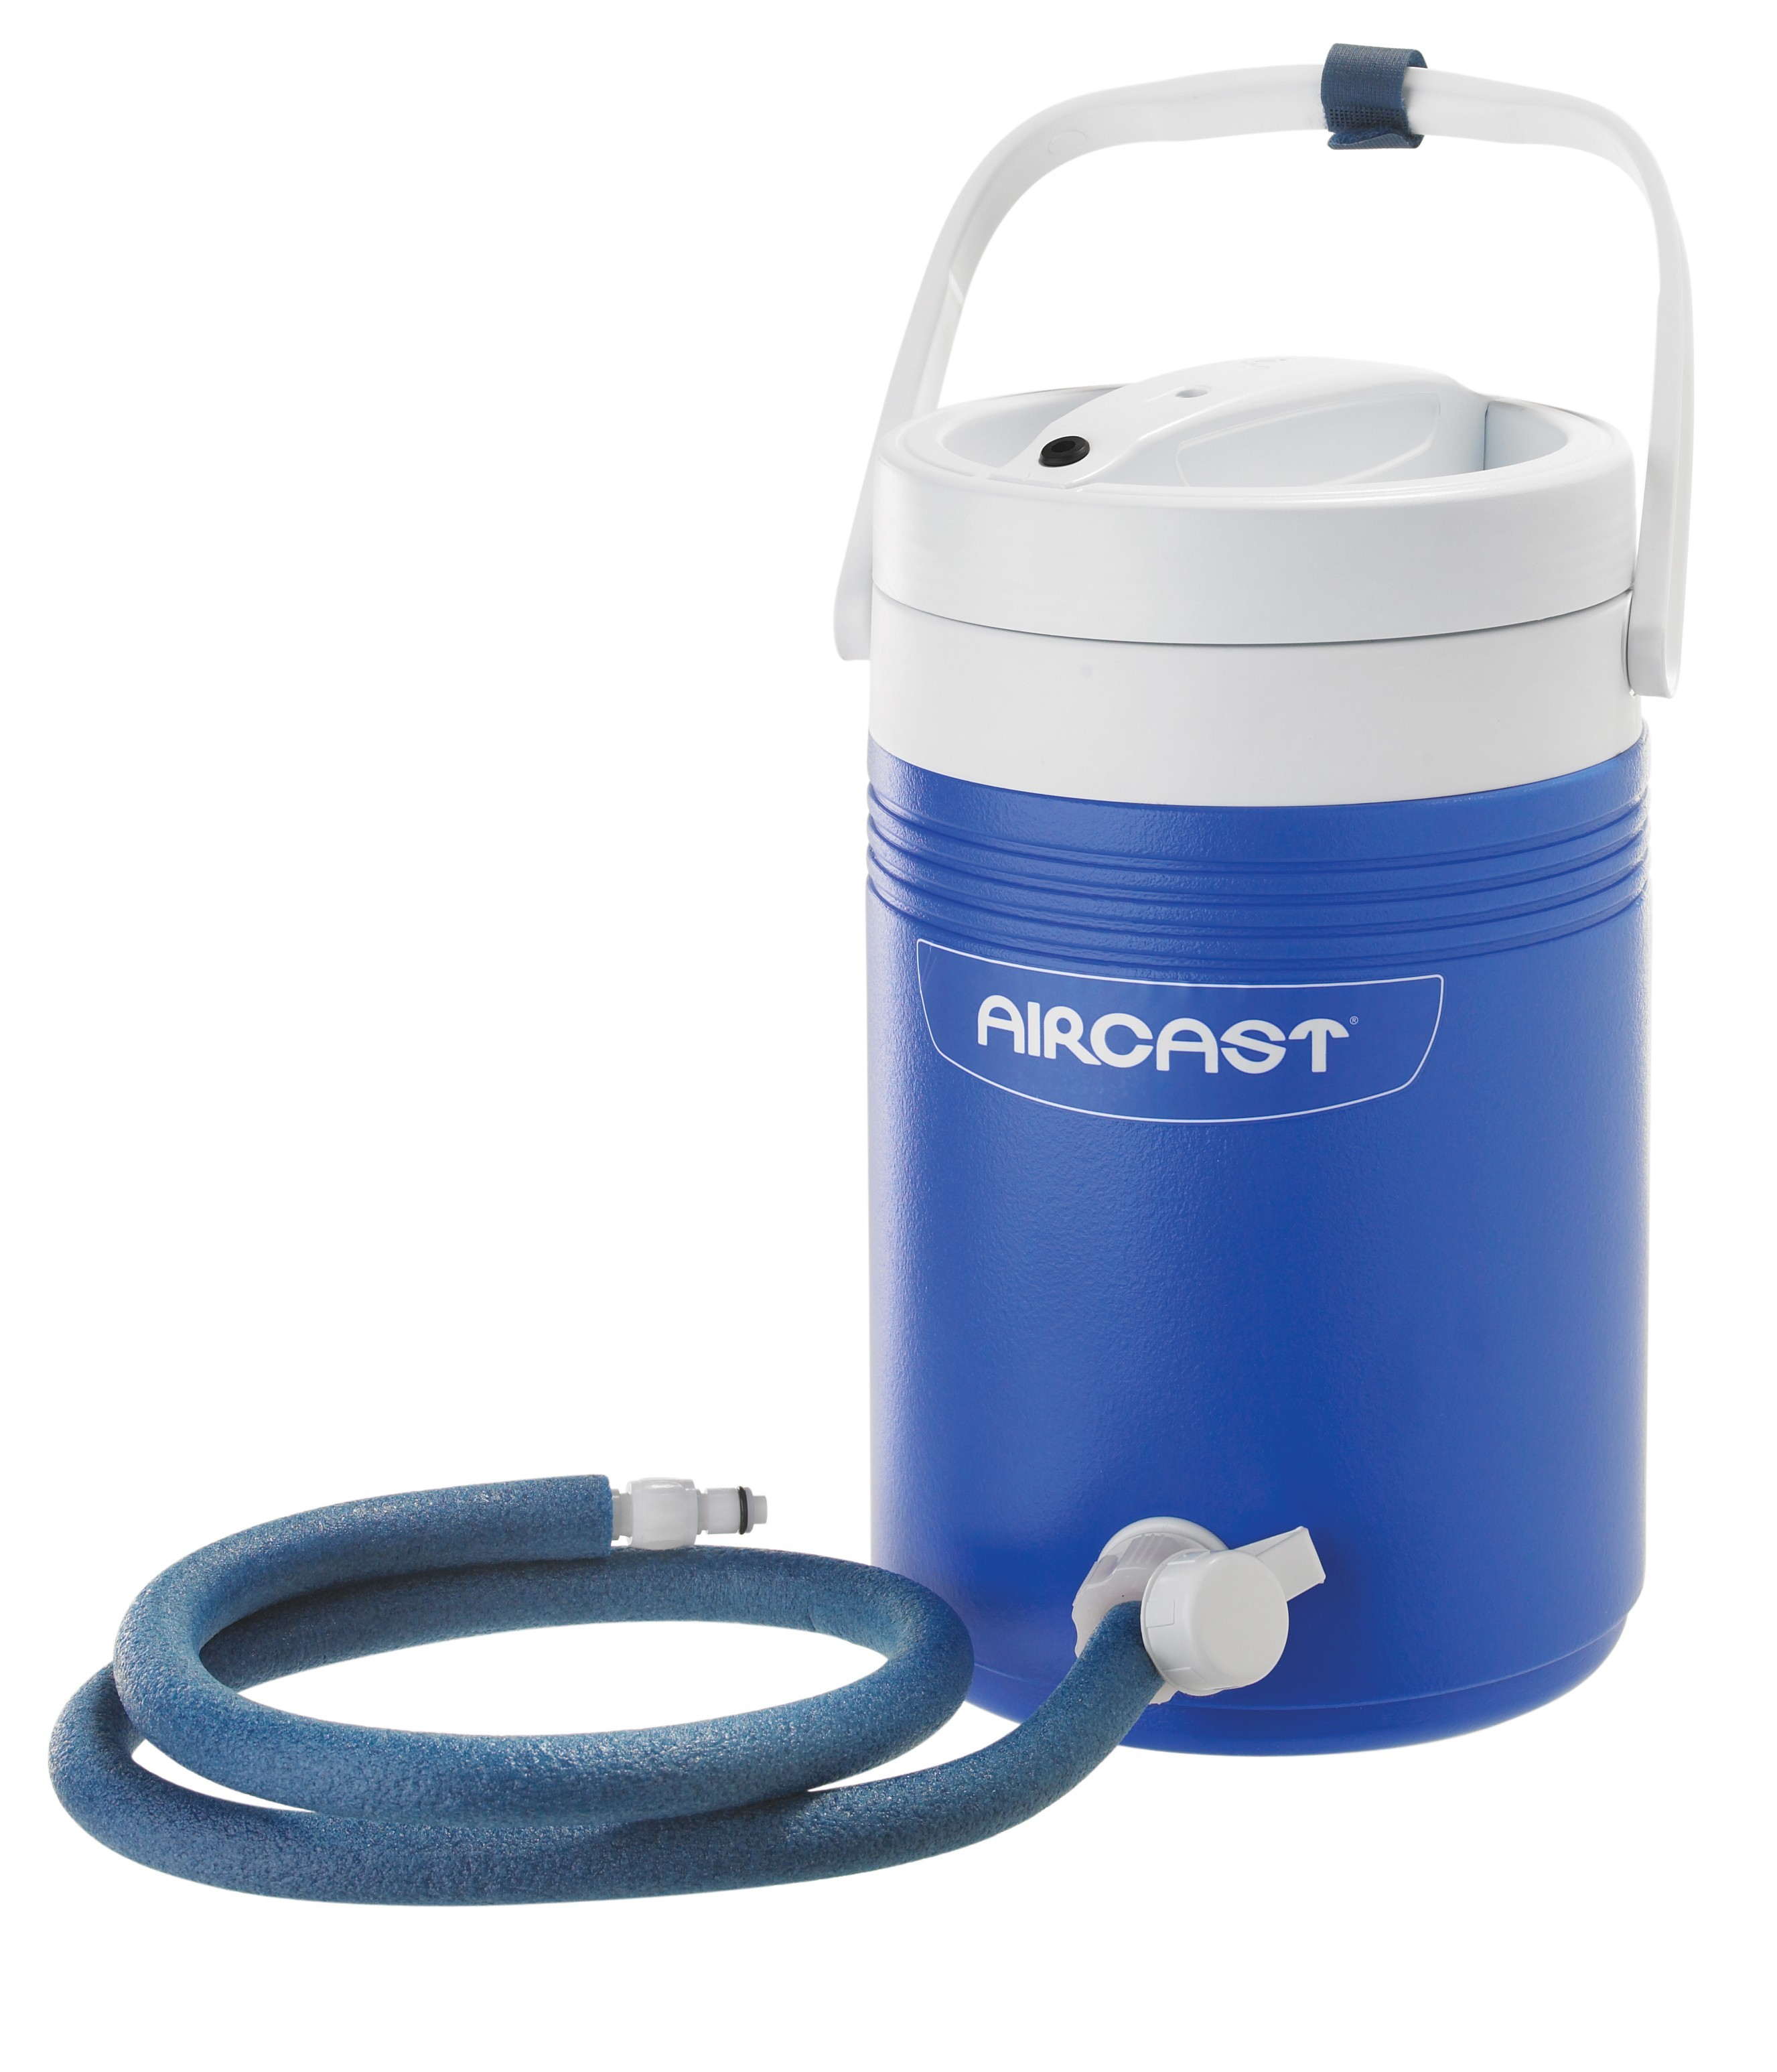 aircast knee cryo cuff with cooler instructions